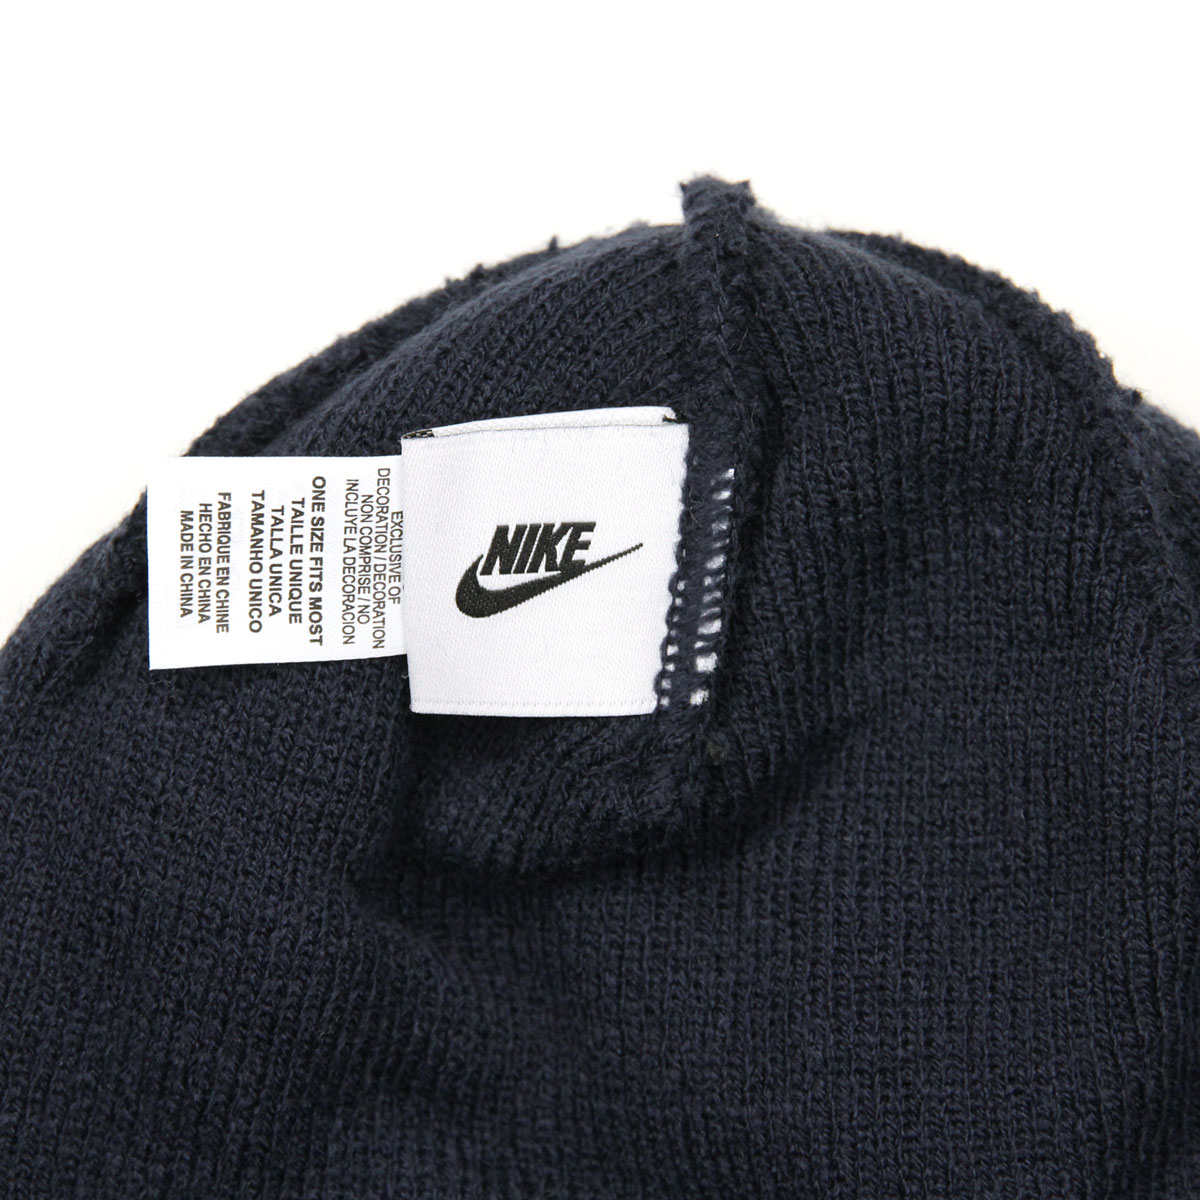 89301706 ... Kiss KITH regular article hat knit cap KITH X NIKE JUST US BEANIE BLACK  NKAH9953- ...